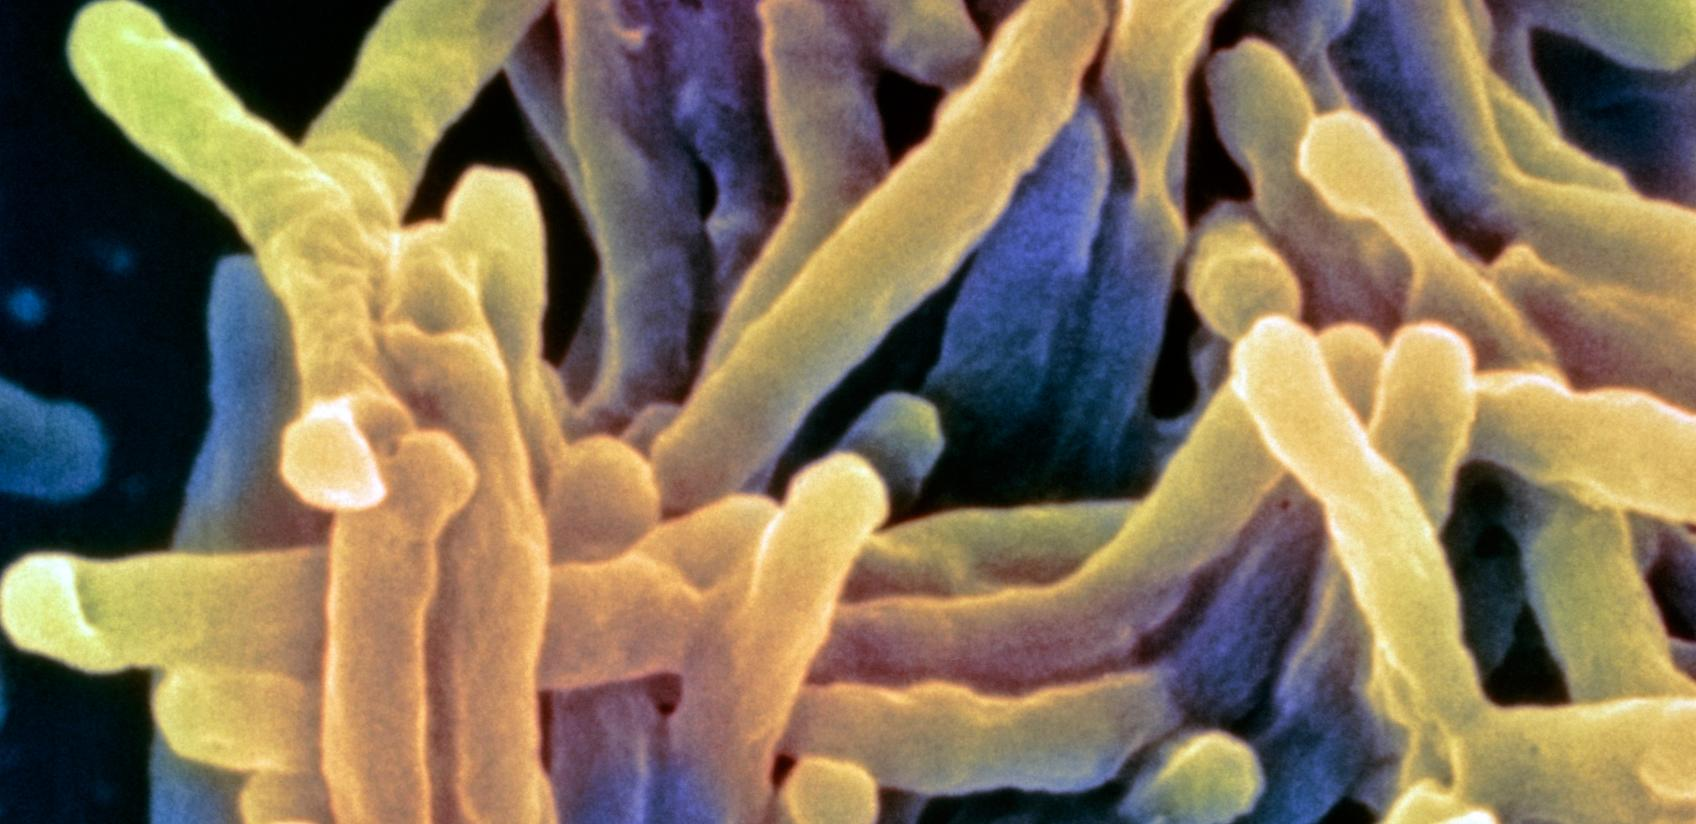 Picture of tuberculosis from a microscope.